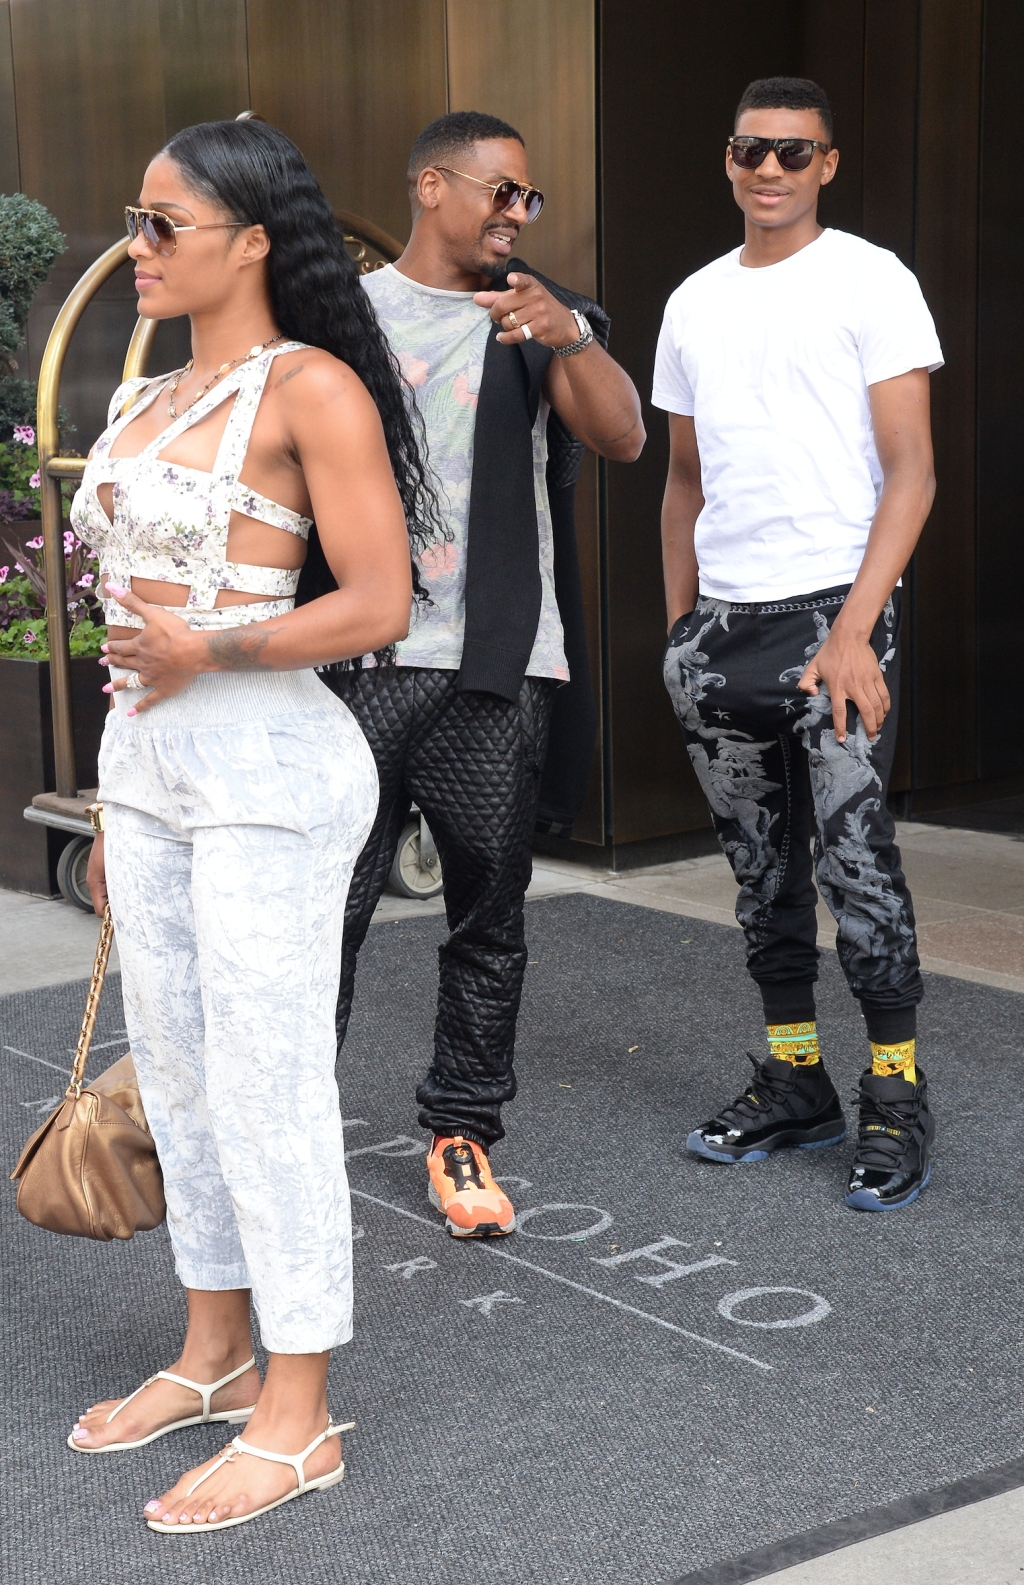 Joseline Hernandez and Stevie J out and about in NYC